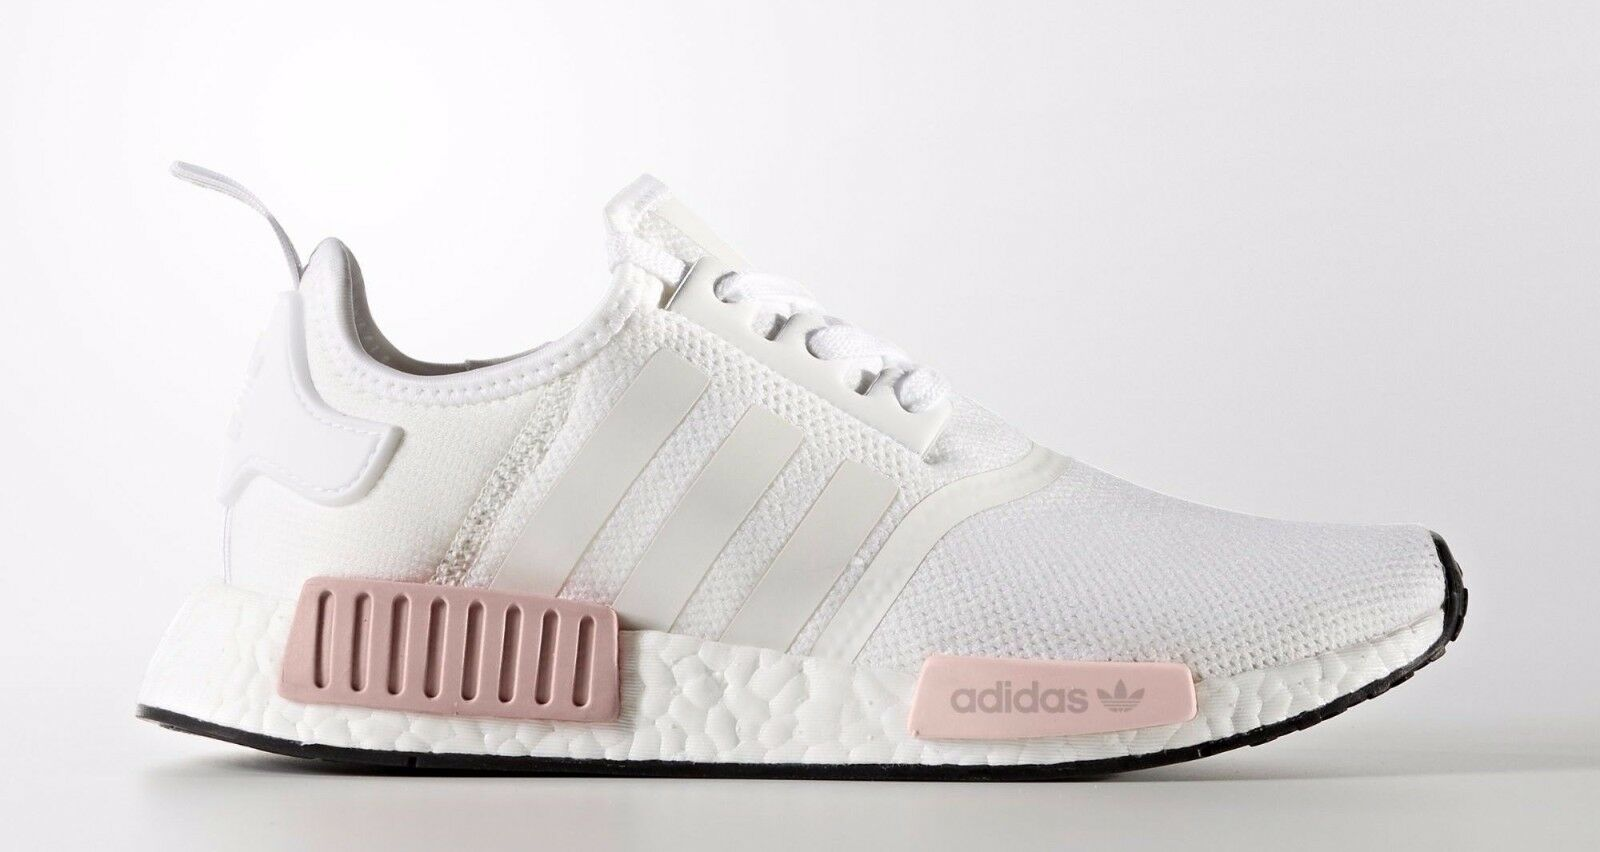 Adidas nmd r1 bianca runner maglie by9952 icy rosa rosa bianca r1 5.5-10 femminile c14051